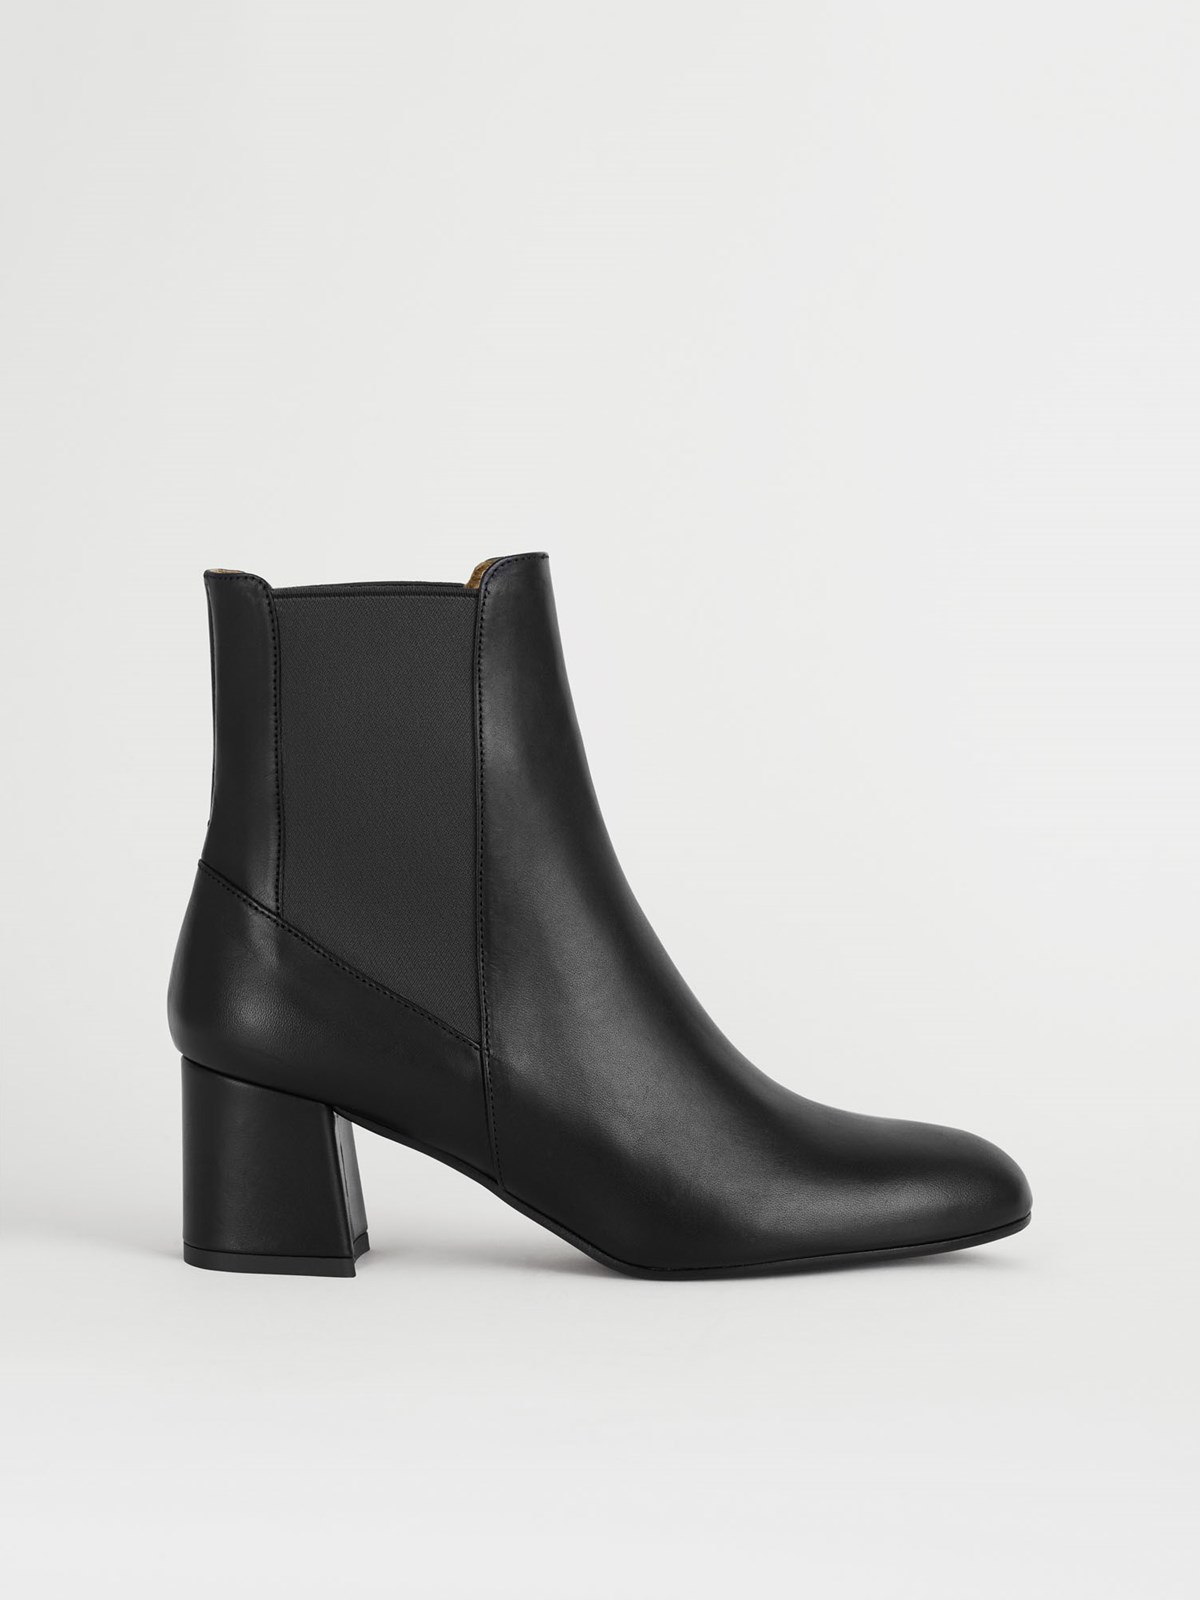 Altea Black Ankle boots